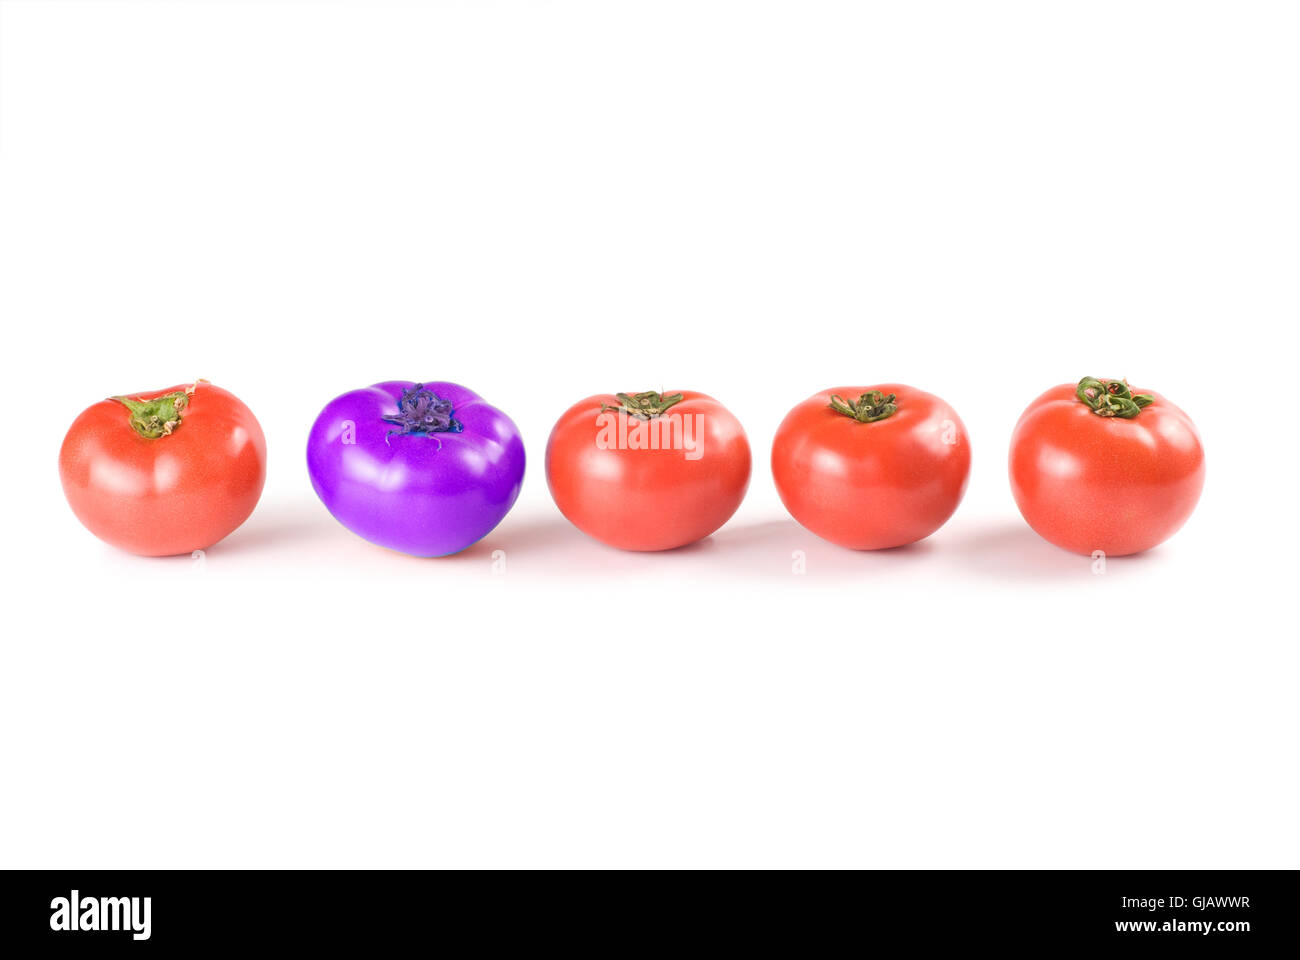 Different than the rest, tomatoes. - Stock Image